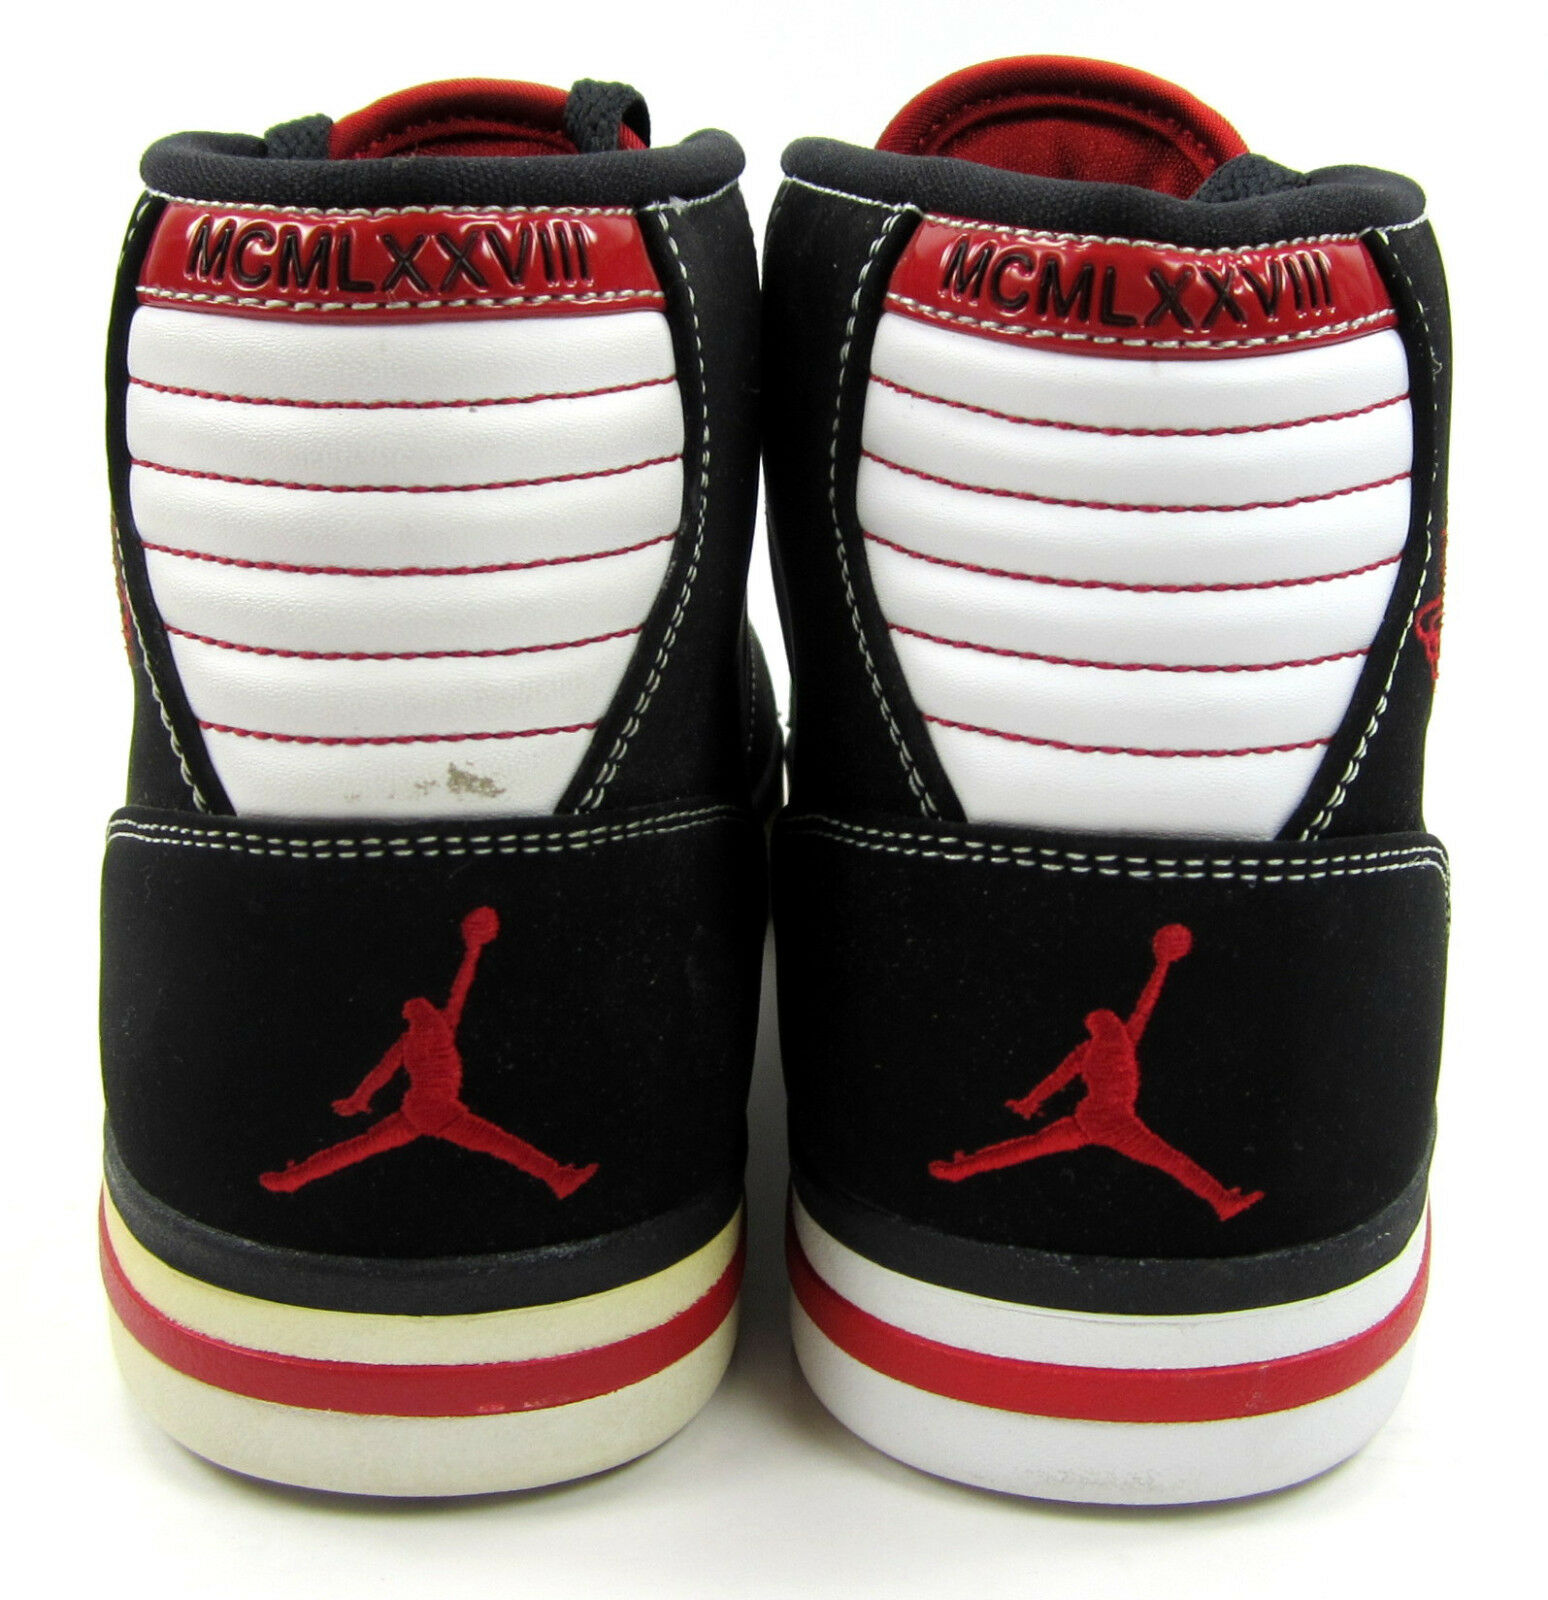 Nike Nike Nike shoes Air Jordan Phly Black Varsity Red White Sneakers Size 9 670a0c